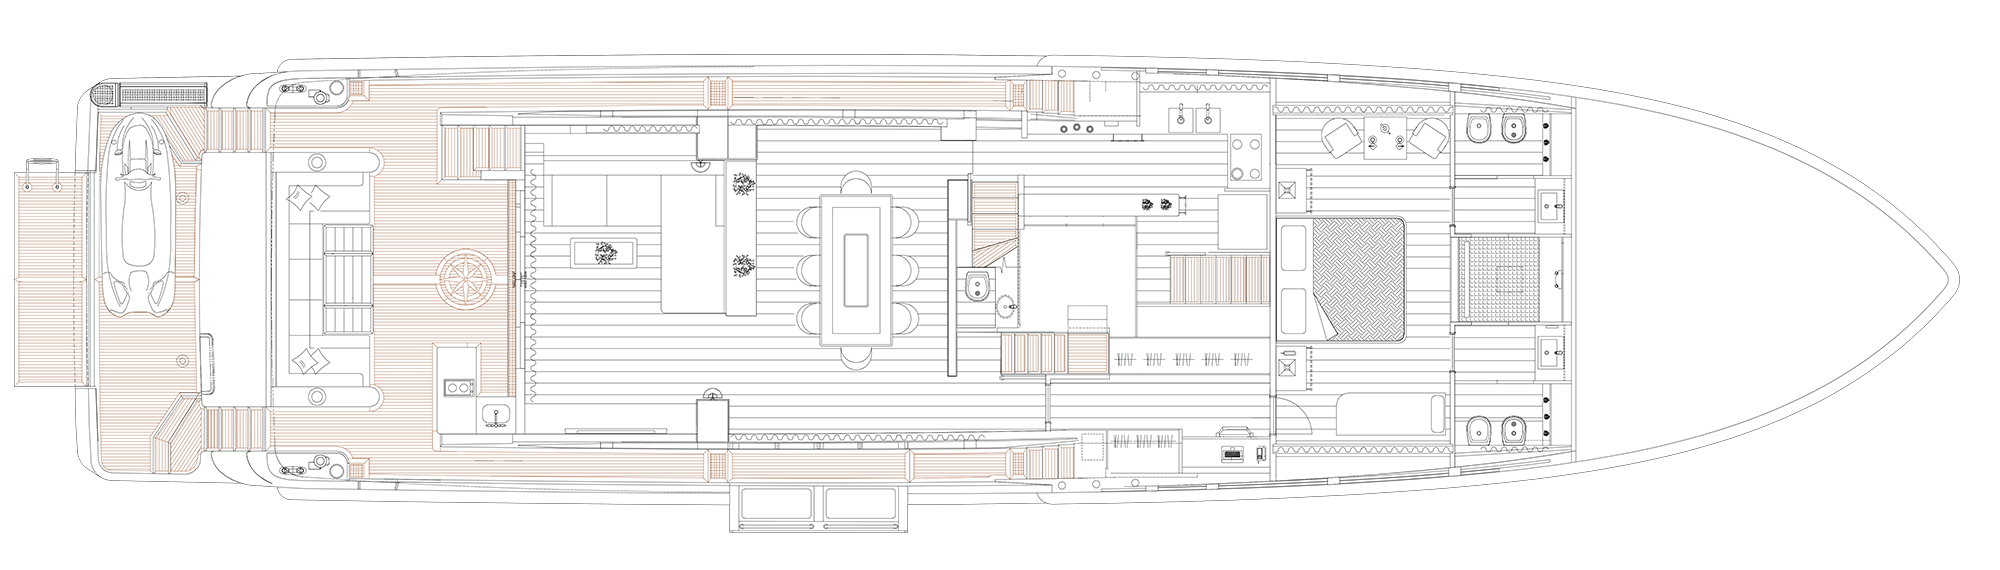 MAIN DECK - CASCO 02